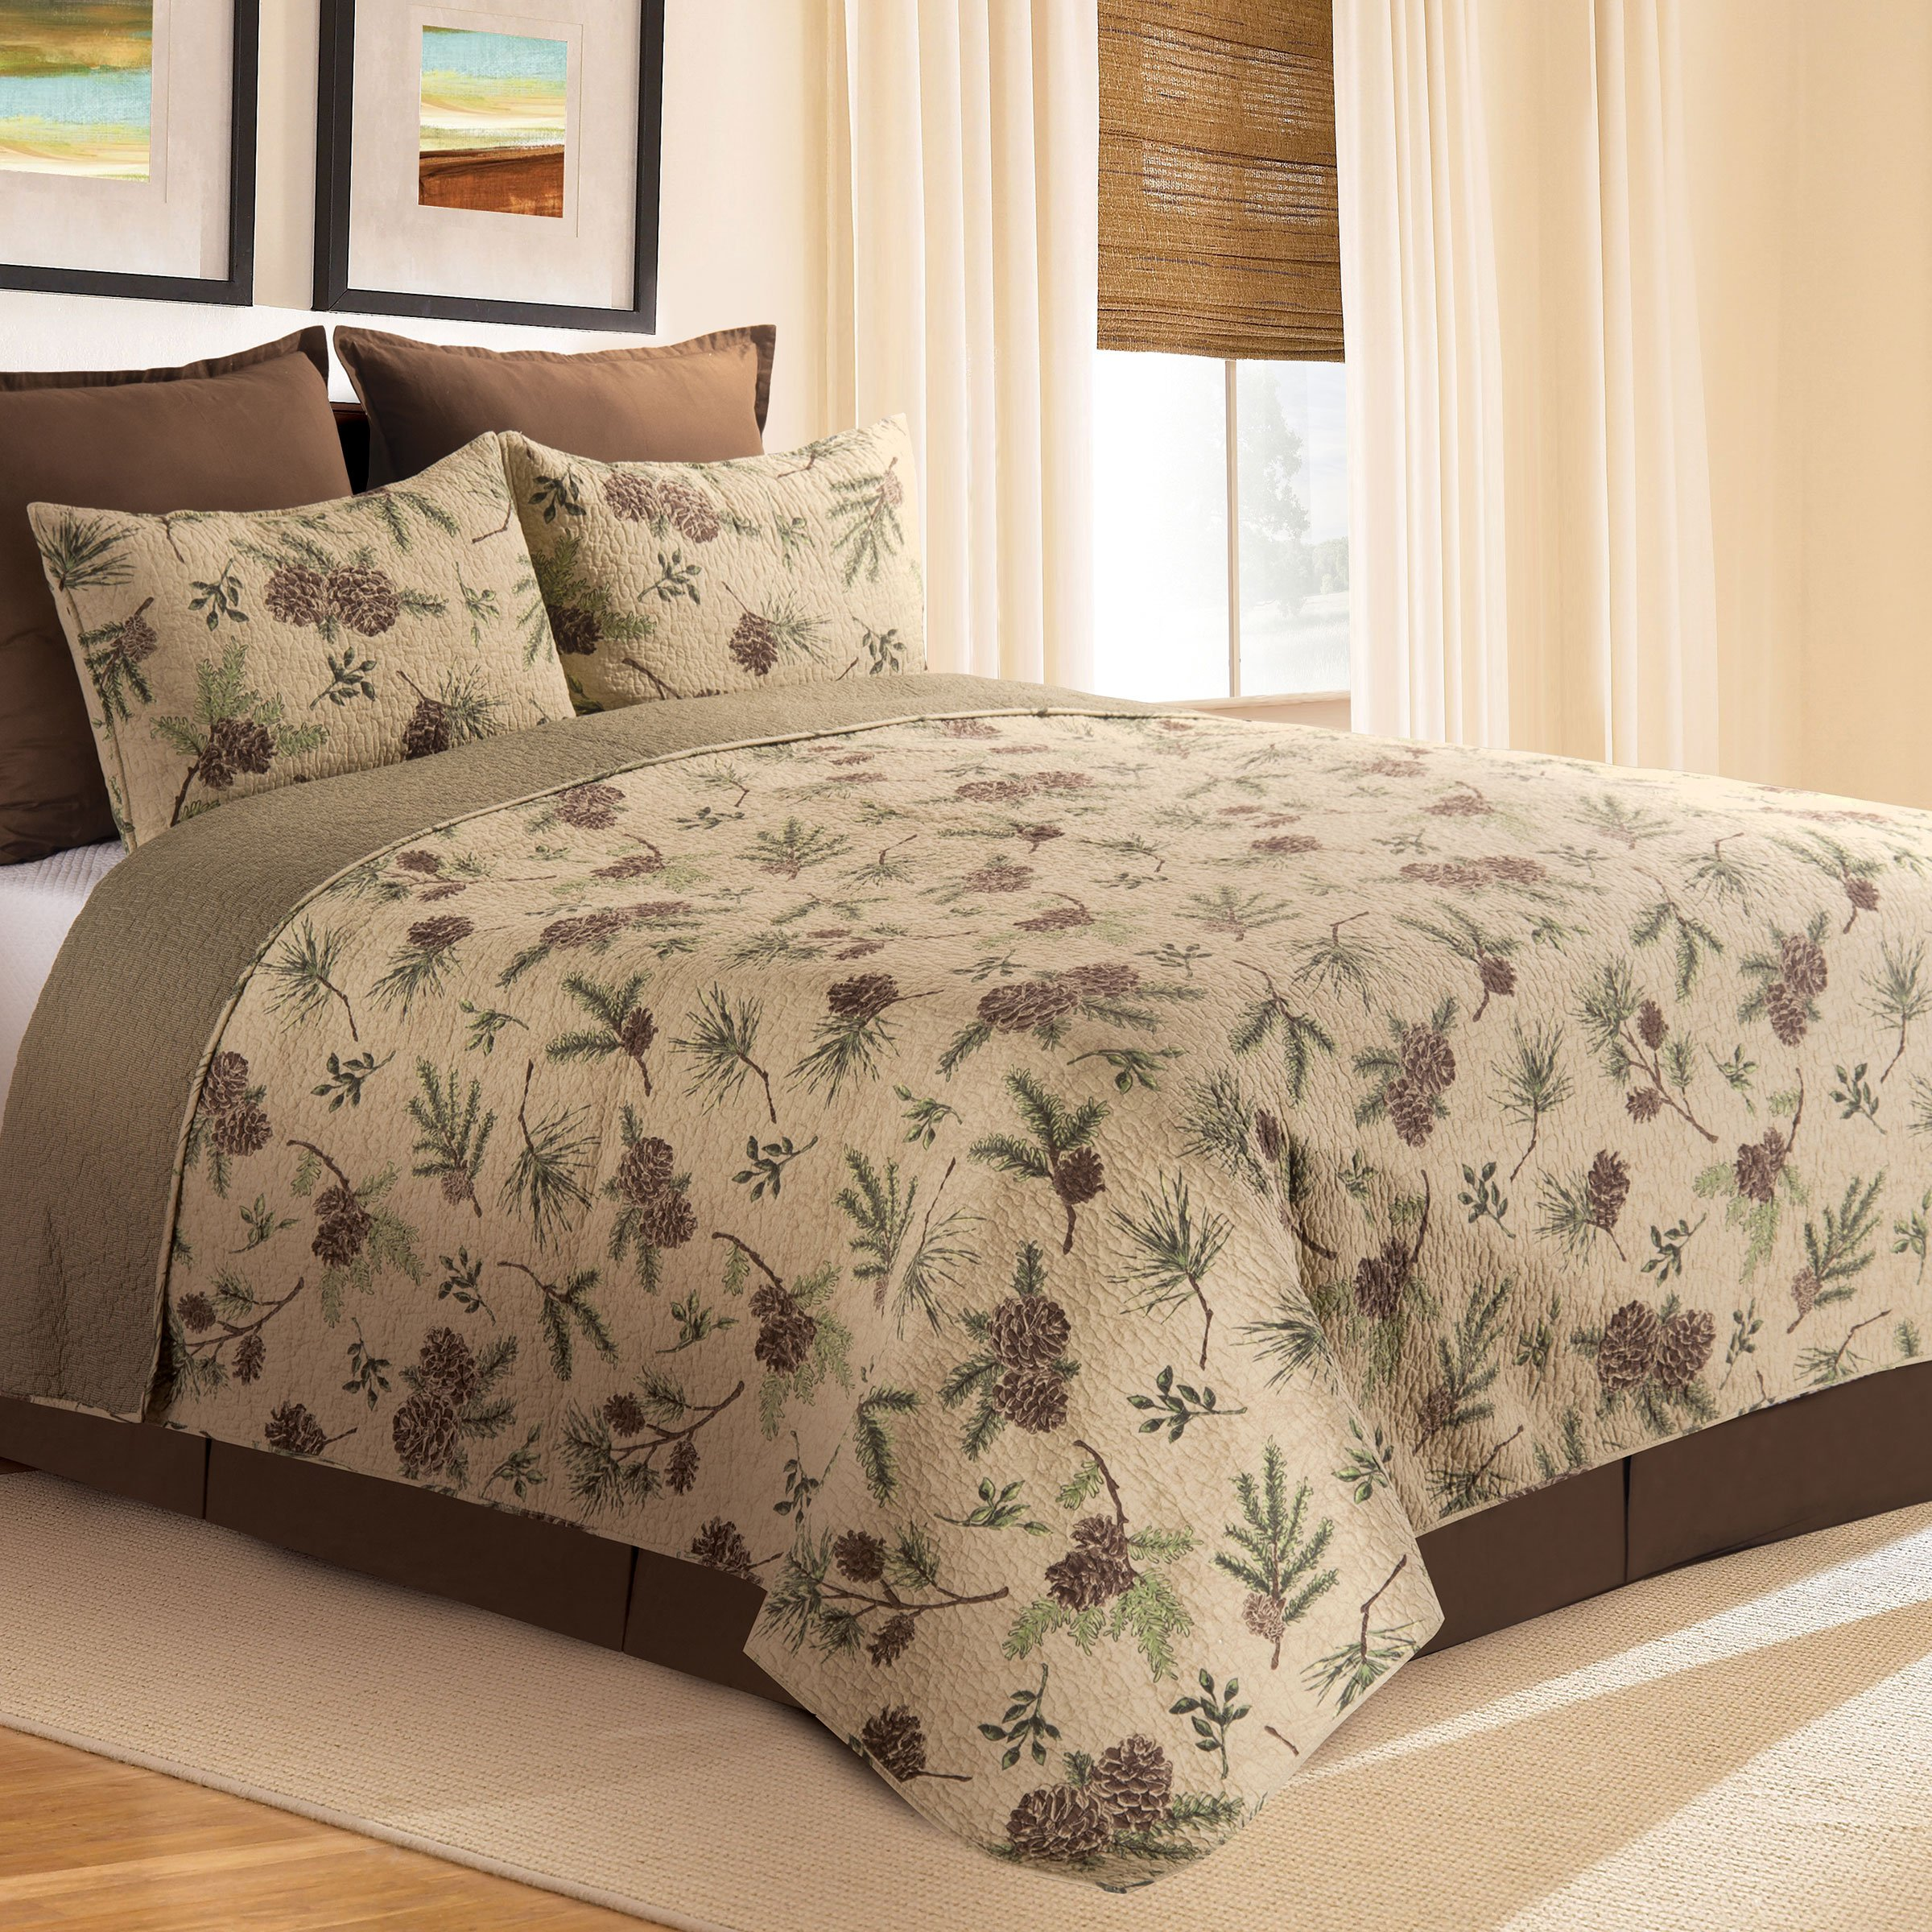 C&F Home Woodland Retreat Twin 2 Piece Quilt Set Twin 2 Piece Set Tan